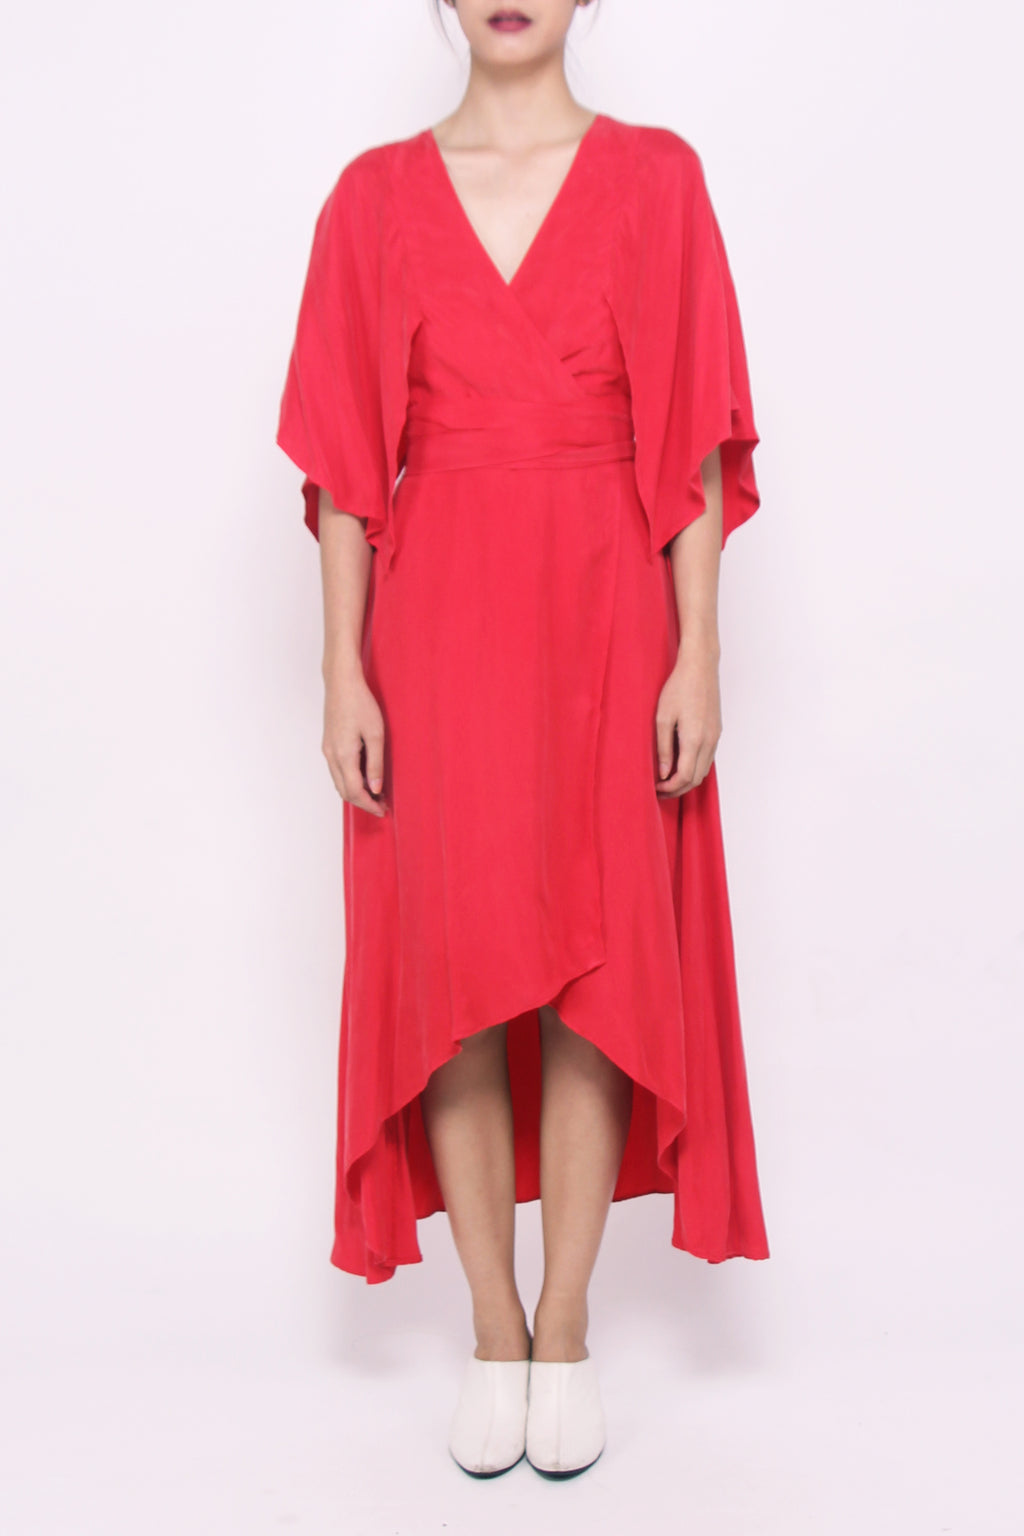 Tie-waist Kimono Sleeves Dress - Cherry Red